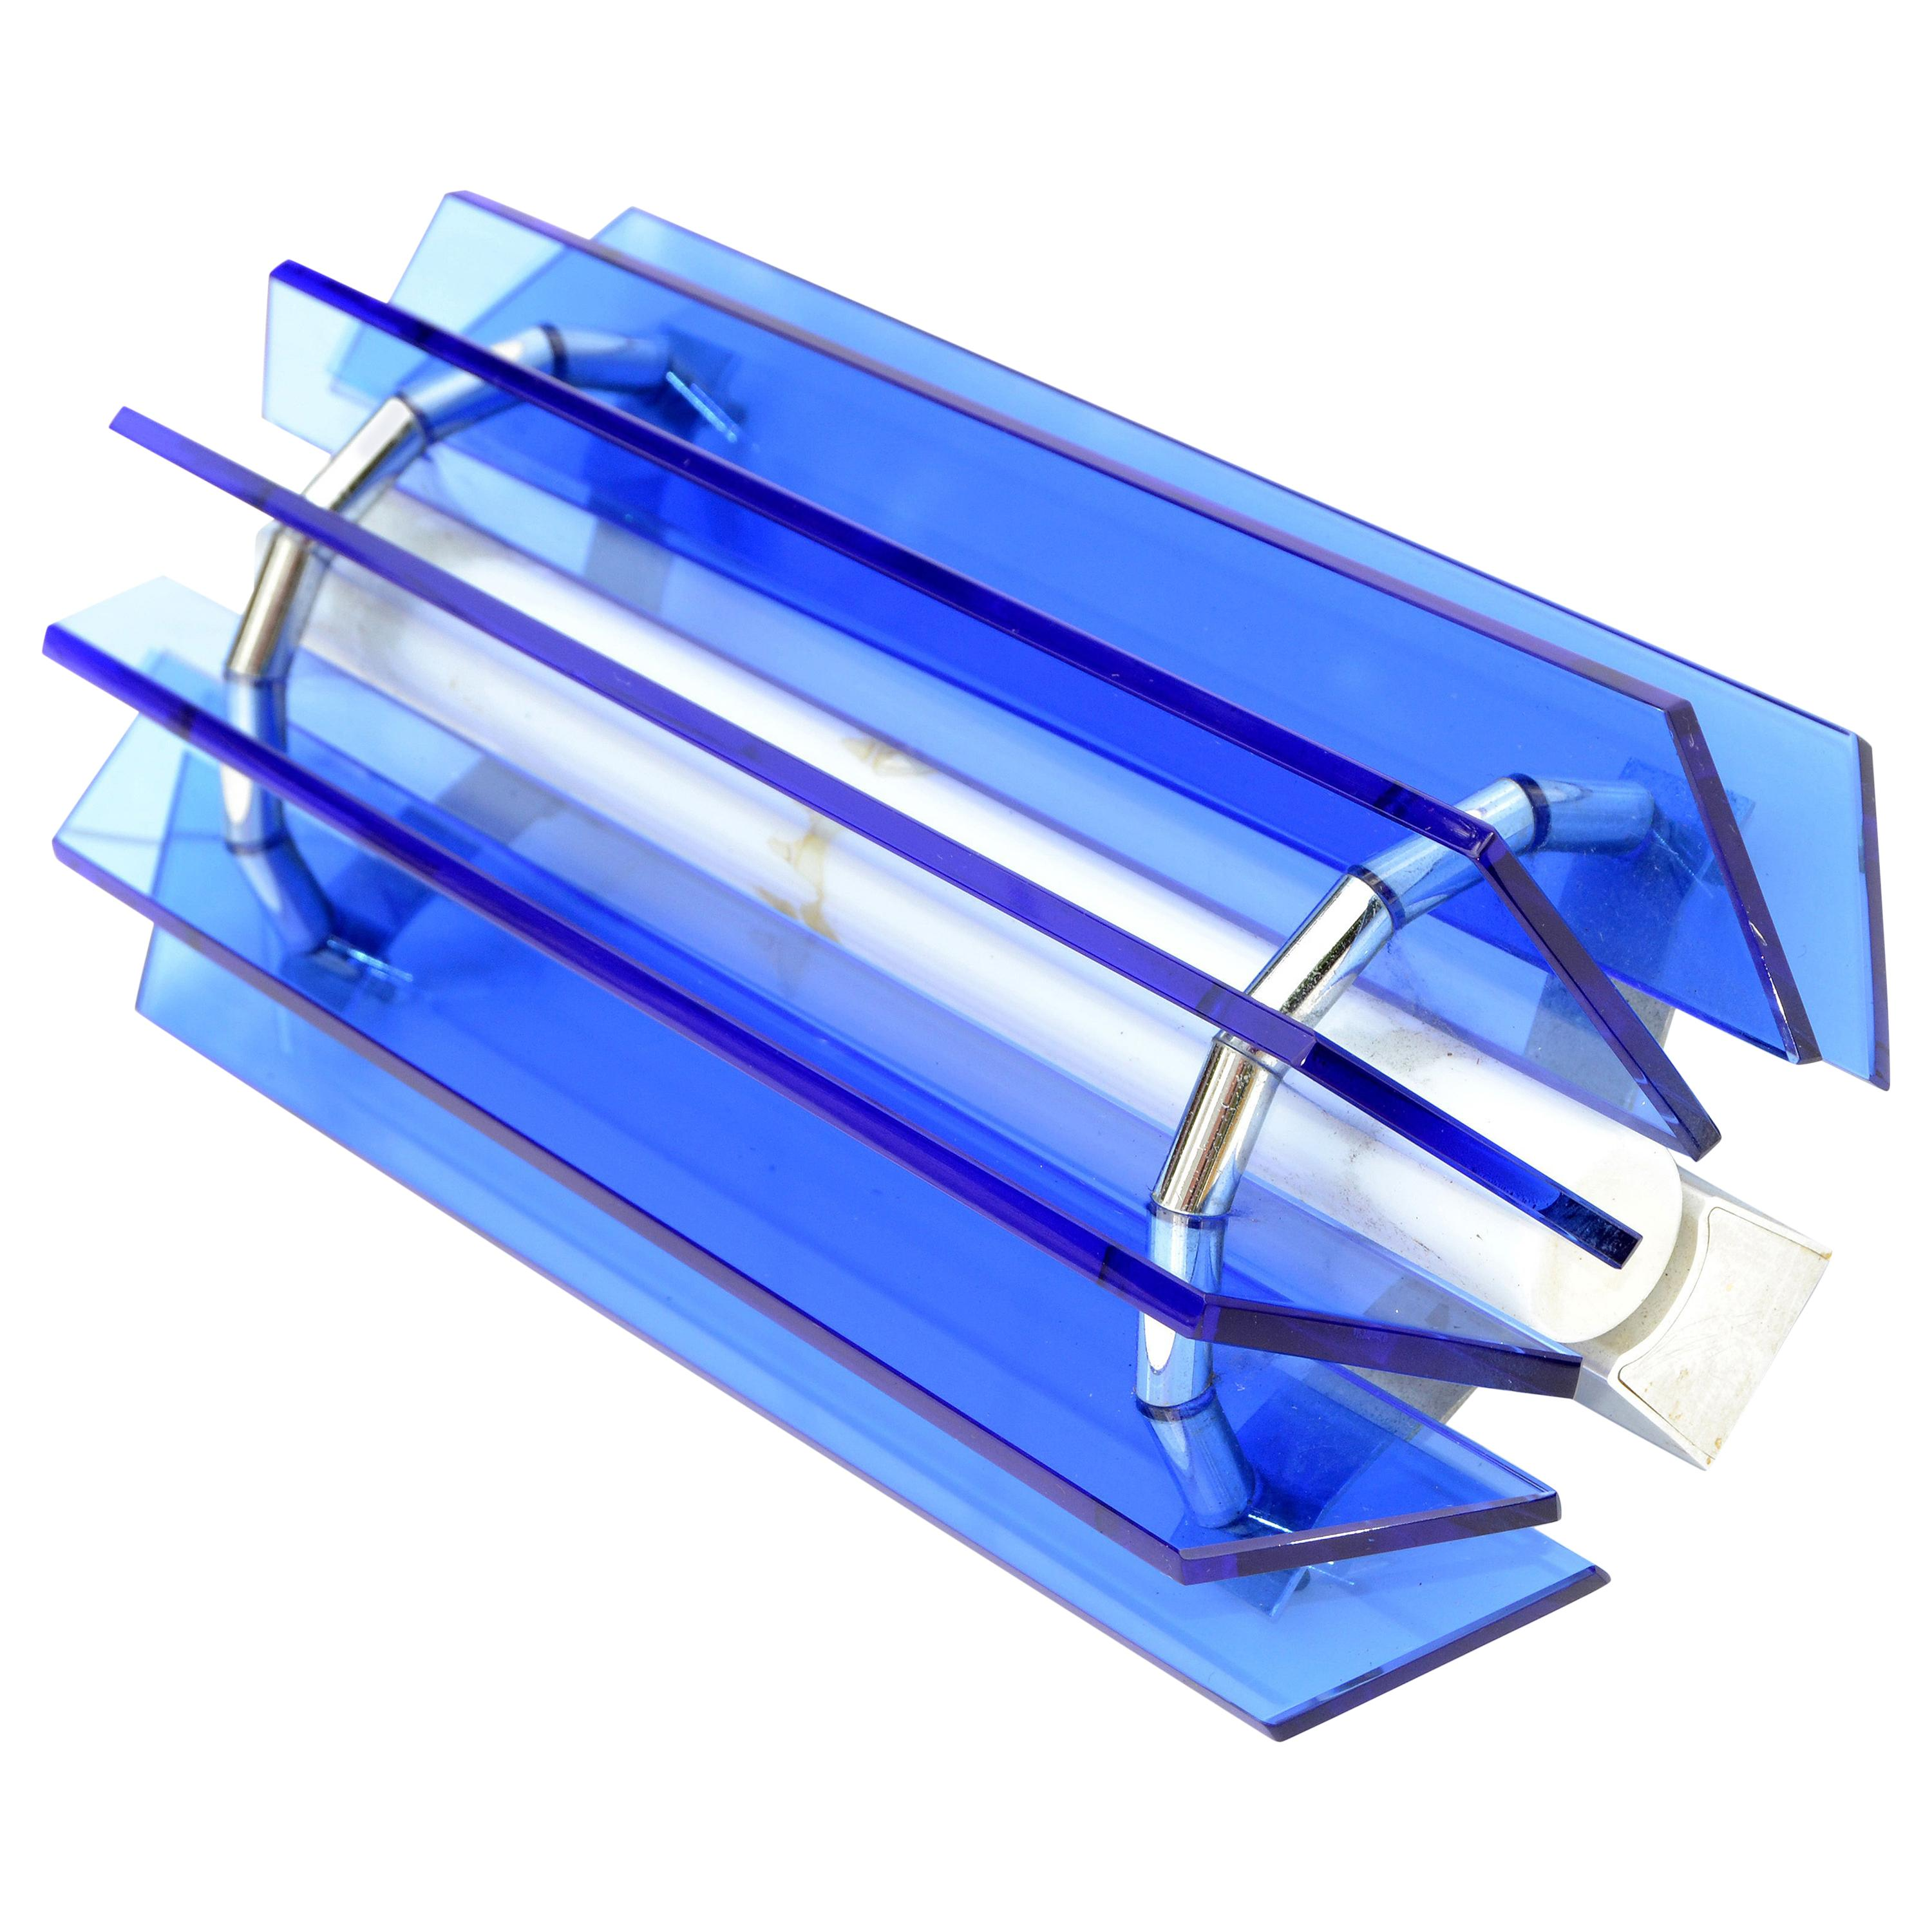 Large VECA Blue Mid-Century Modern Glass Chrome Wall Sconce, Italy, 1960s